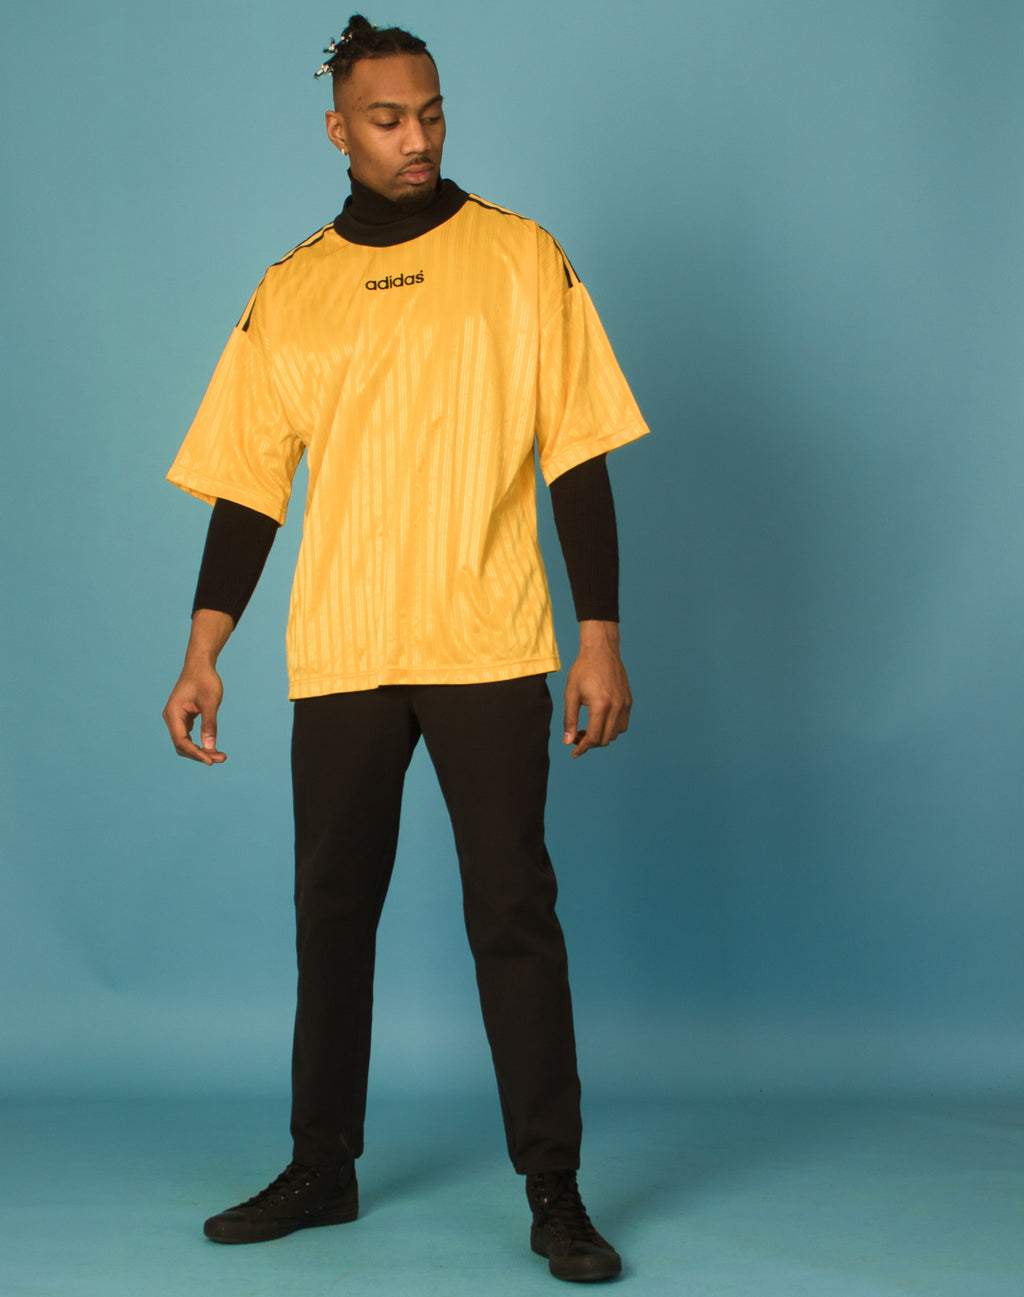 ADIDAS YELLOW SPORTS T-SHIRT